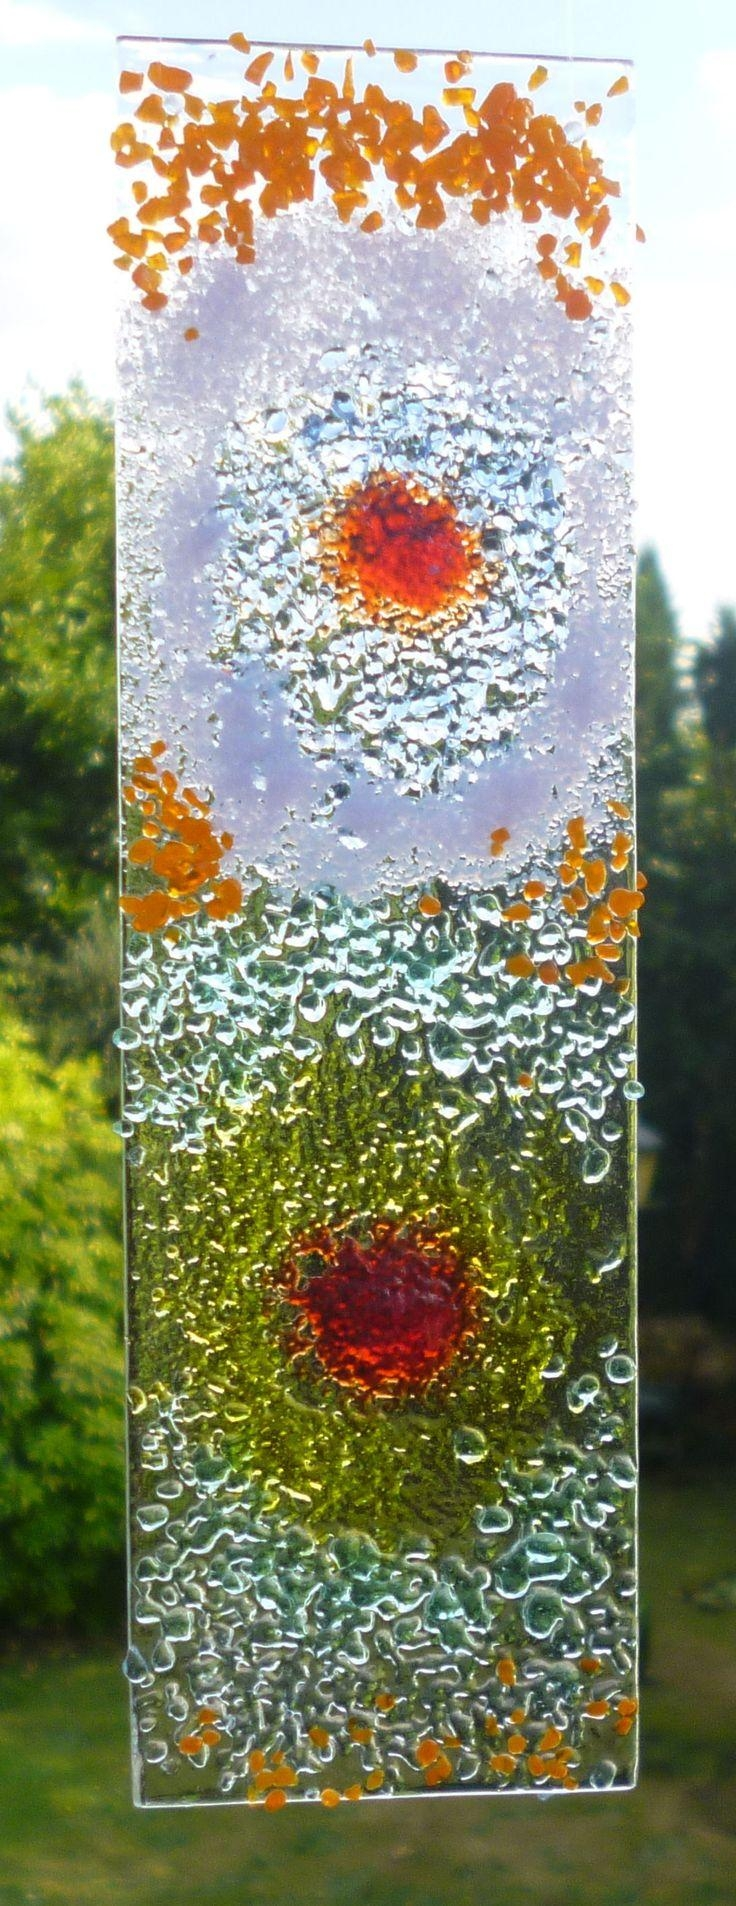 71 Best Suncatchers Images On Pinterest | Art Walls, Fused Glass for Fused Glass Flower Wall Art